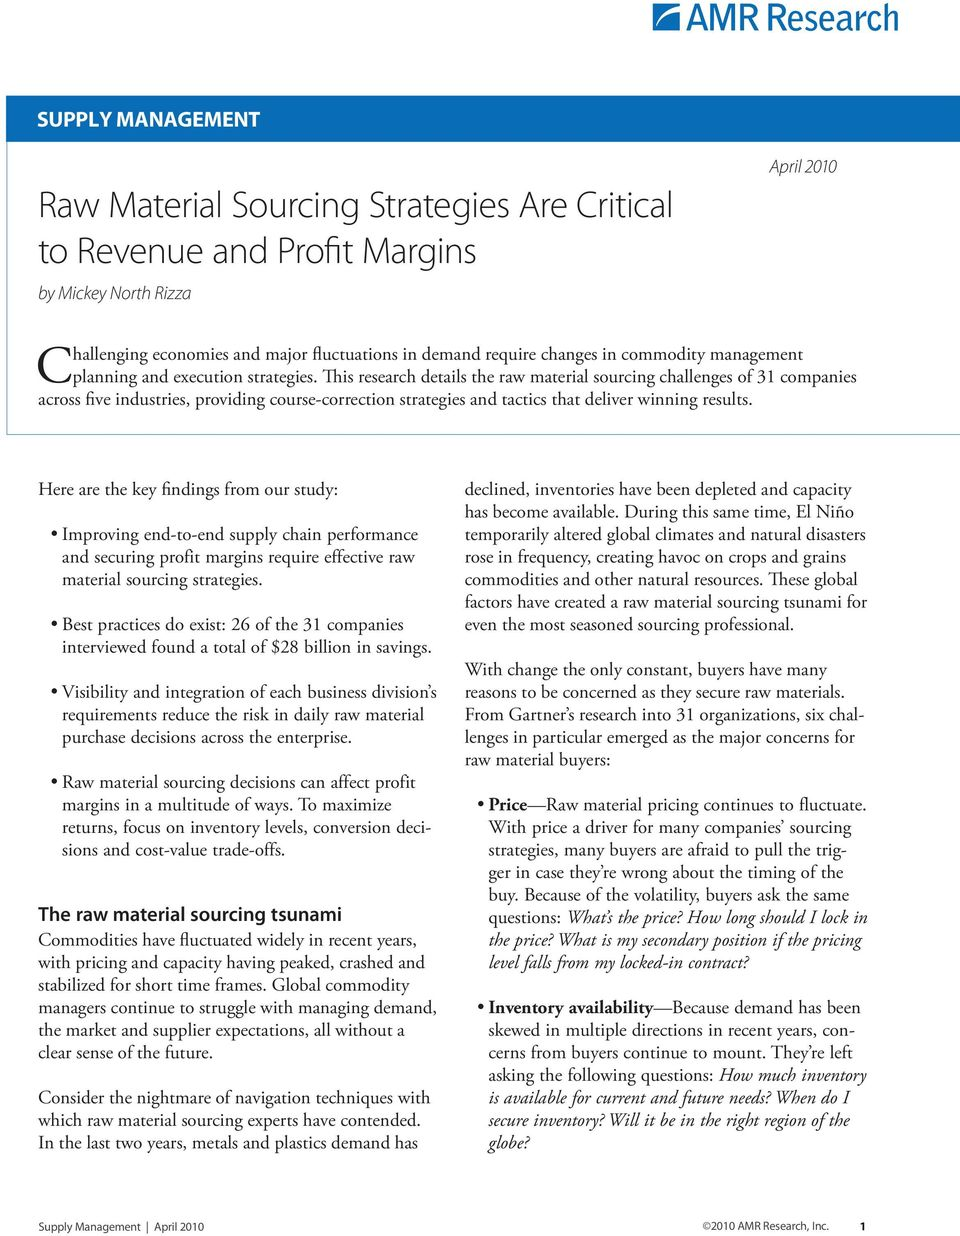 This research details the raw material sourcing challenges of 31 companies across five industries, providing course-correction strategies and tactics that deliver winning results.